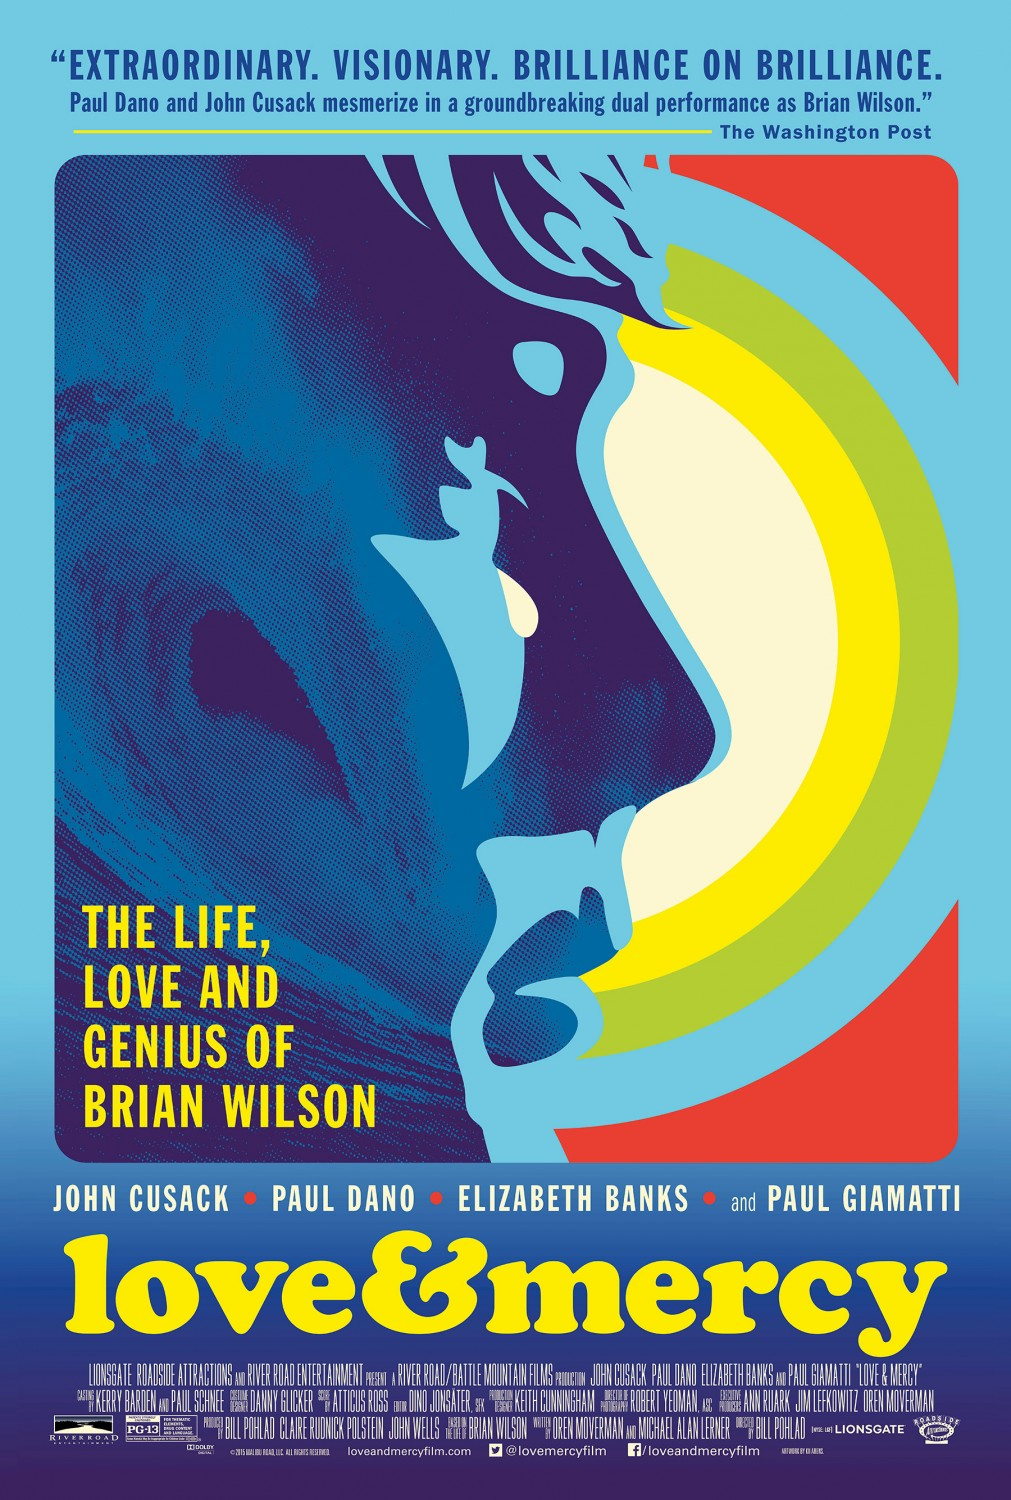 Love & Mercy poster by Kii Arens